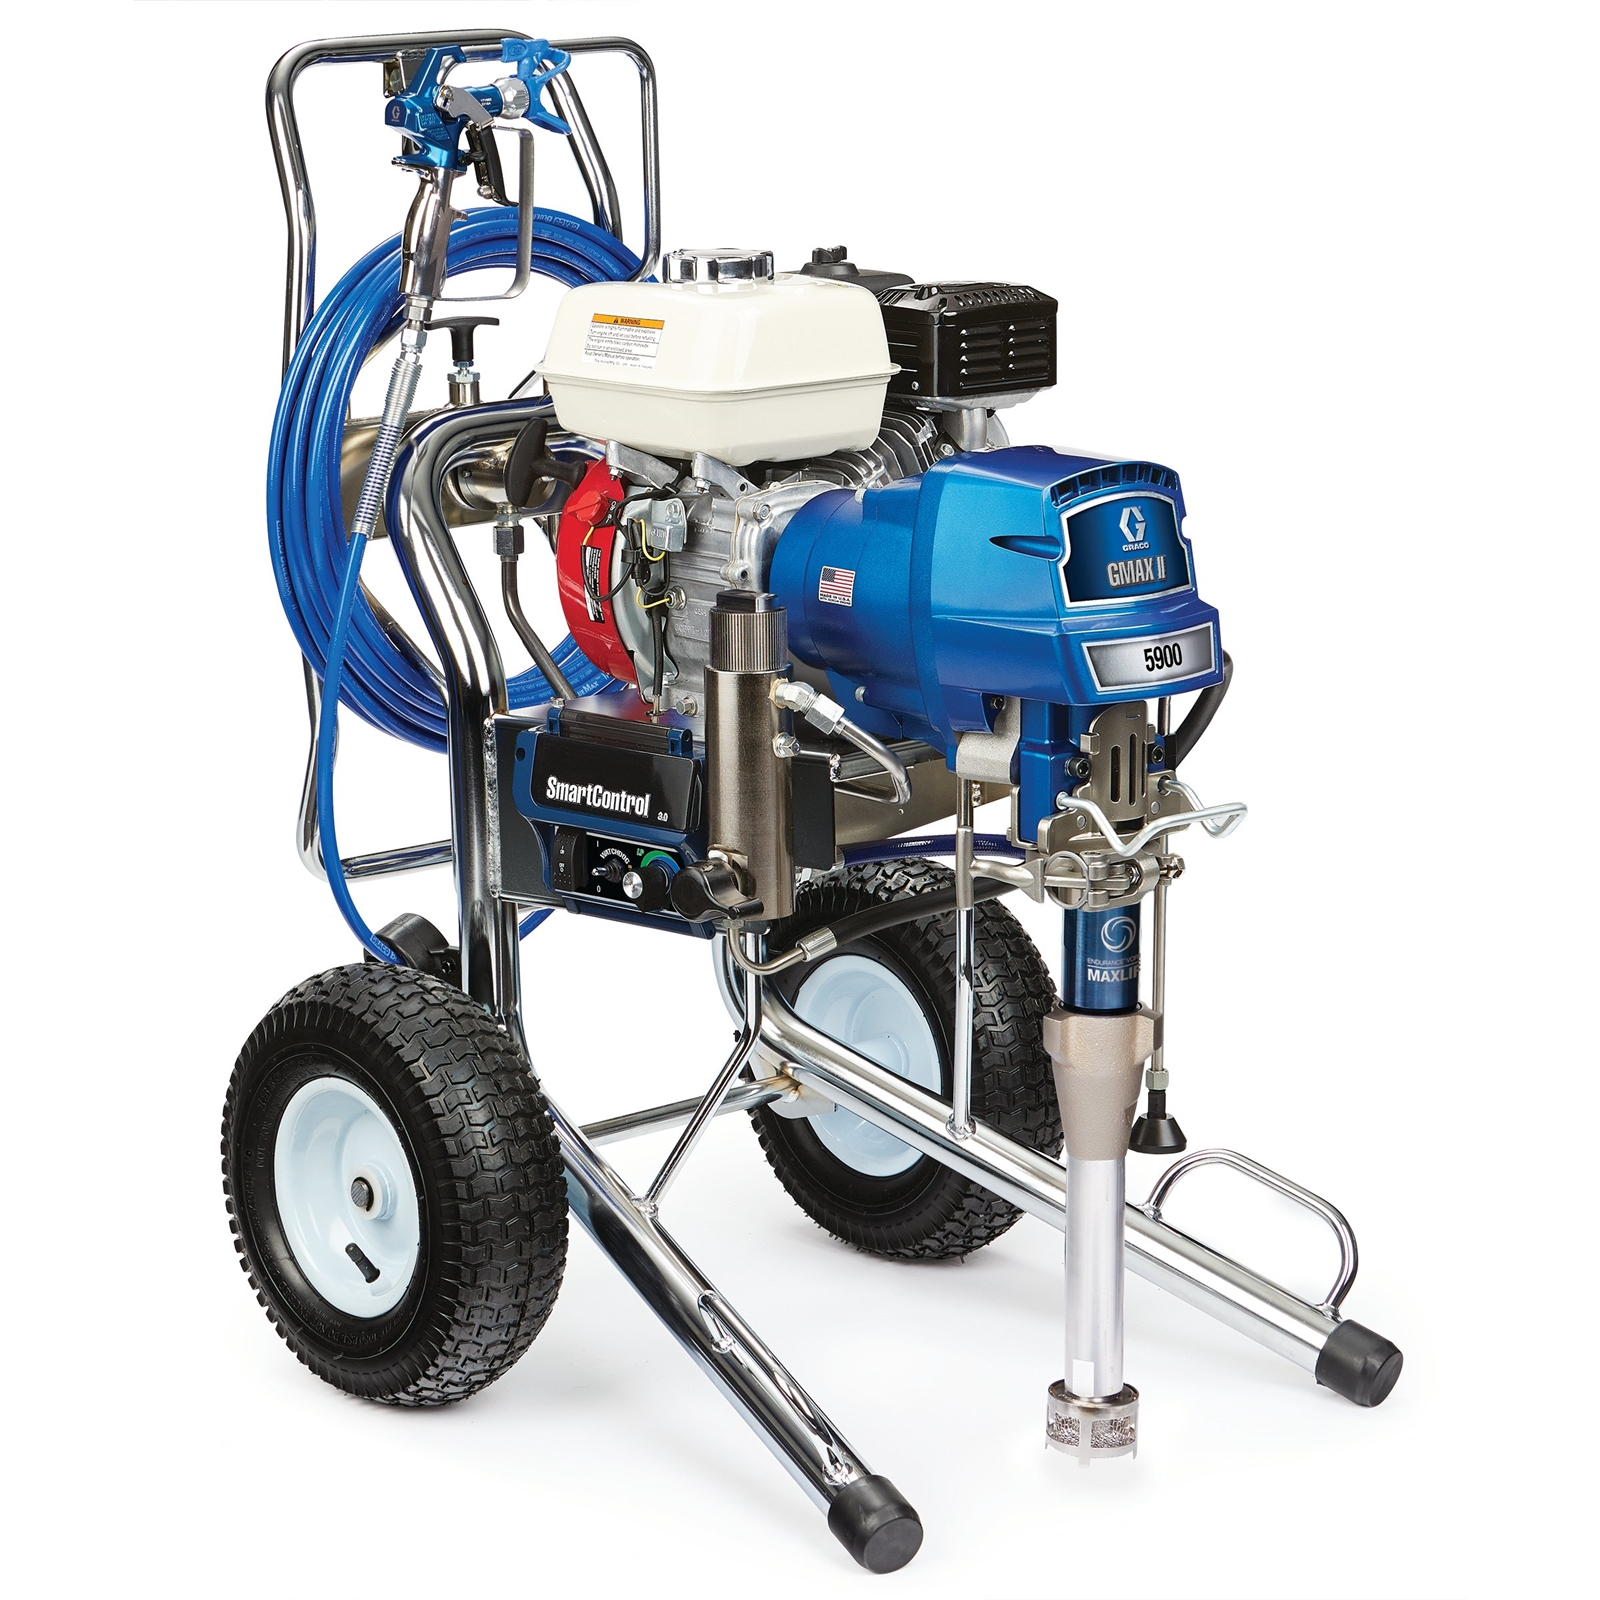 G-MAX II Applications Graco GMAX™ II ProContractor 5900 Gas-Mechanical Airless Sprayer